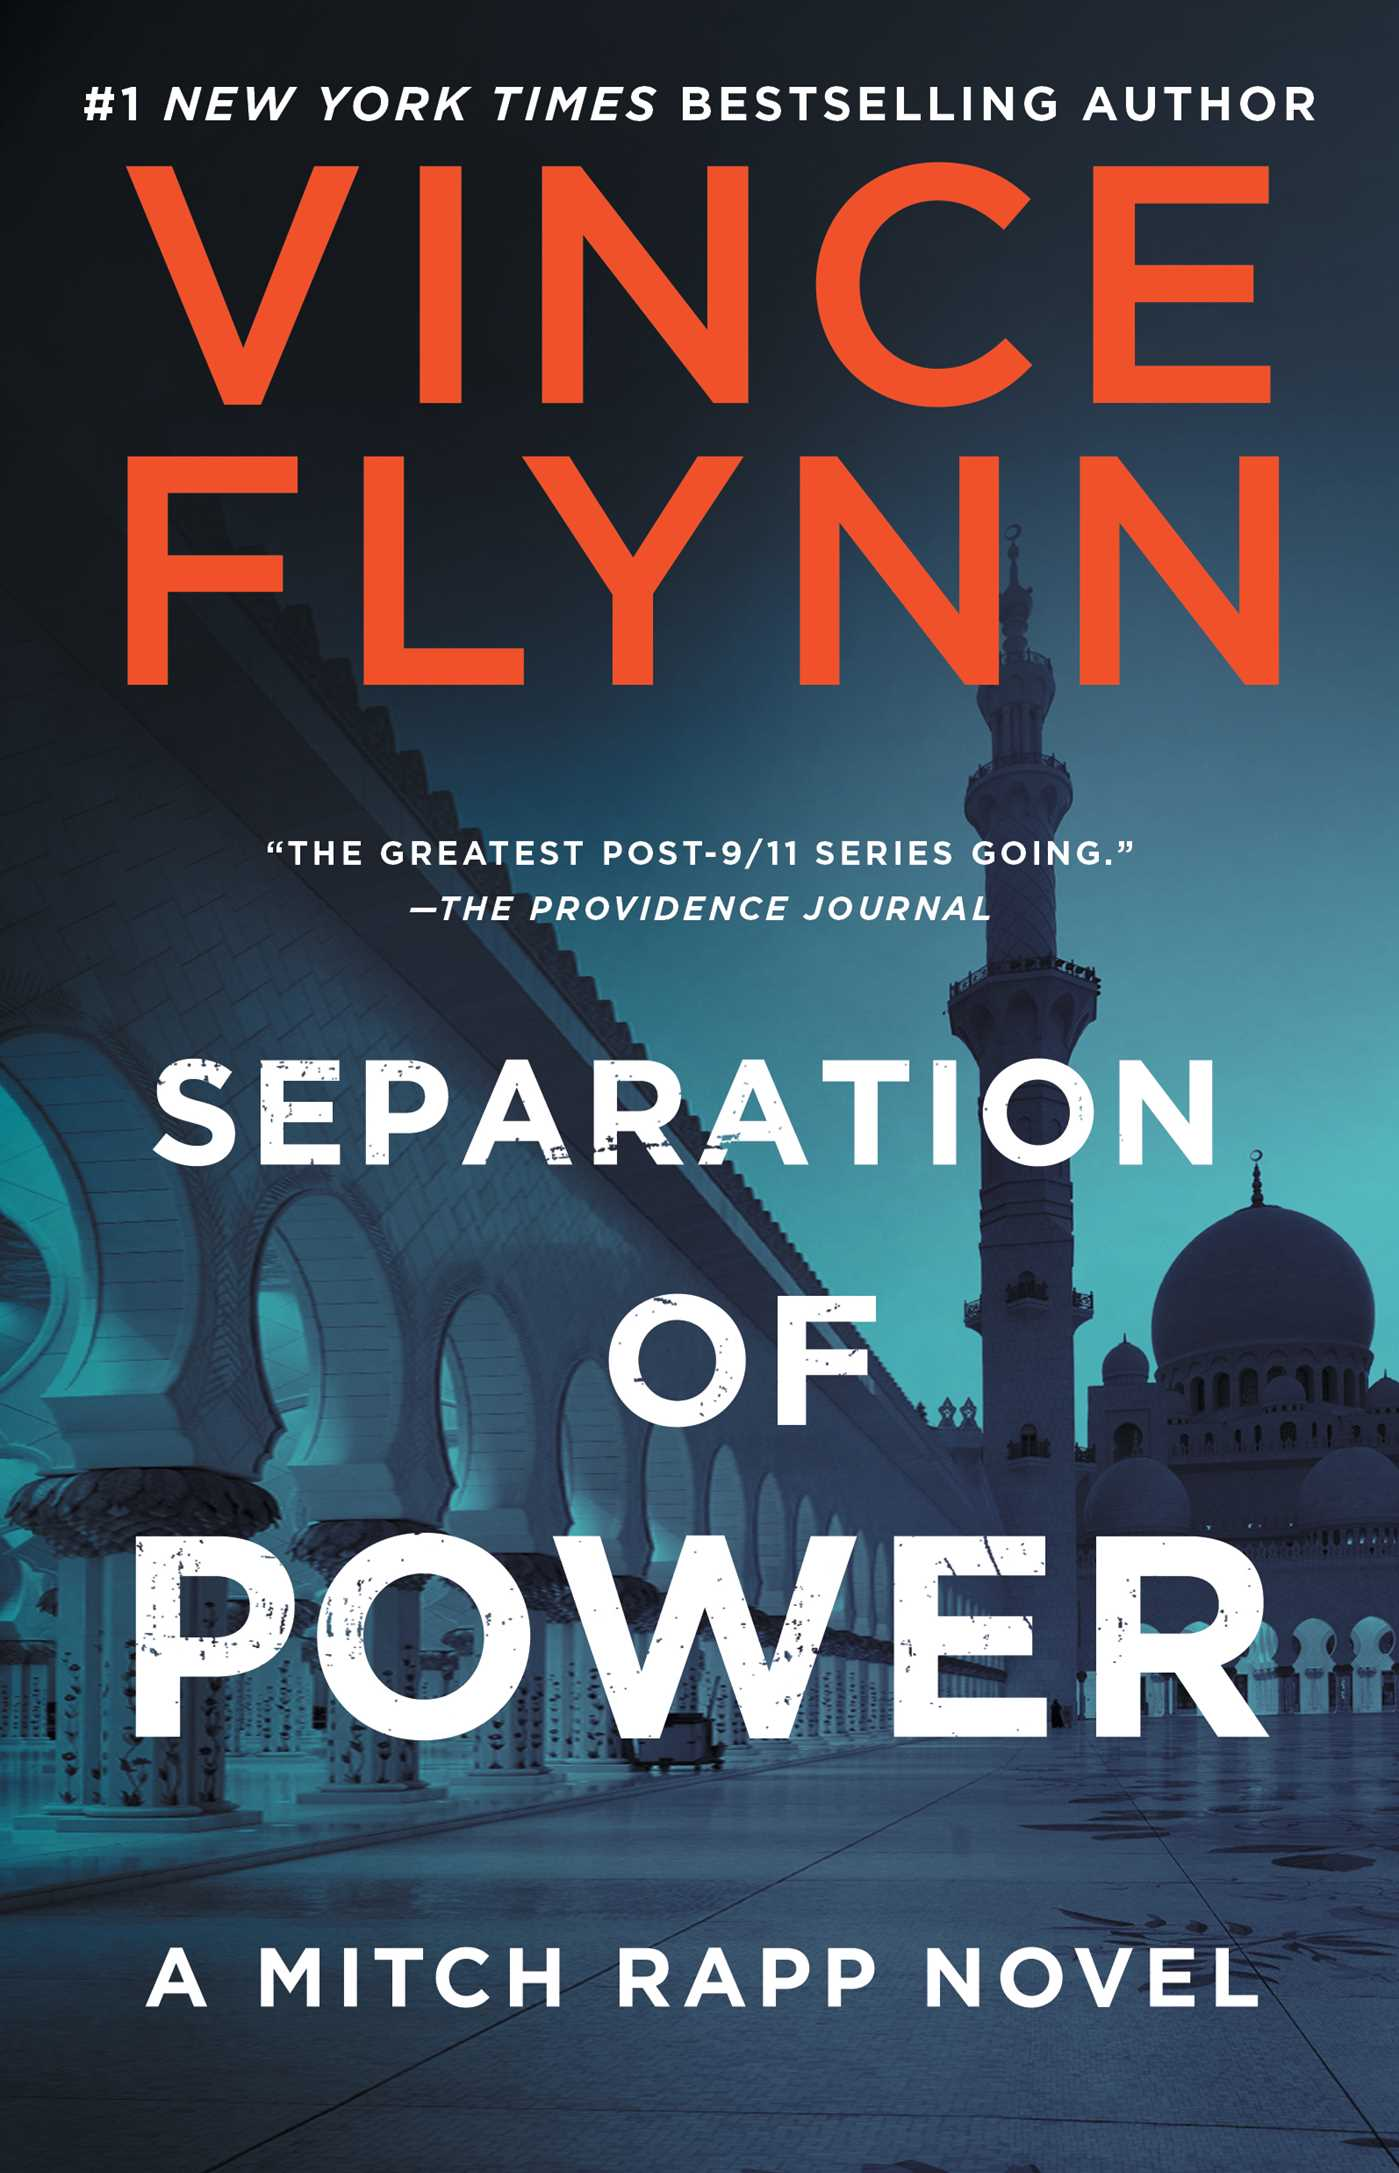 Separation-of-power-9780743449229_hr